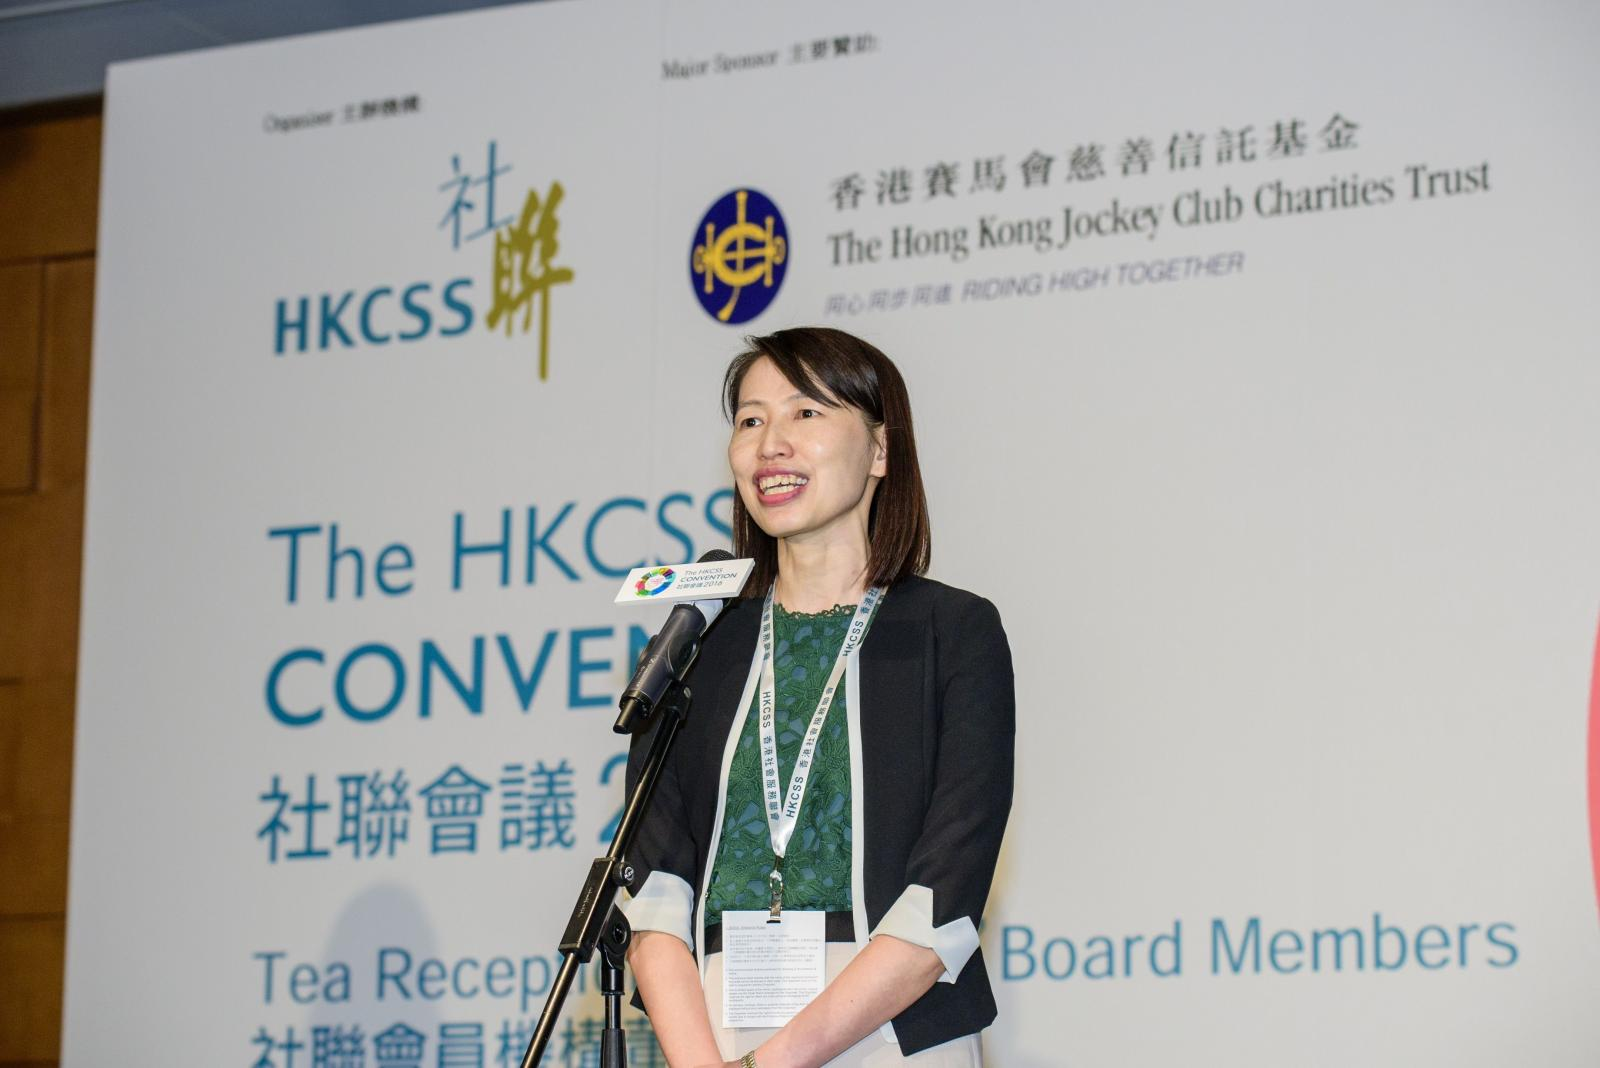 Ms Carol YIP, Director of Social Welfare, believes that the birth of this network can help boards of social services organizations better respond to public request for effective monitoring and high accountability of organizations.